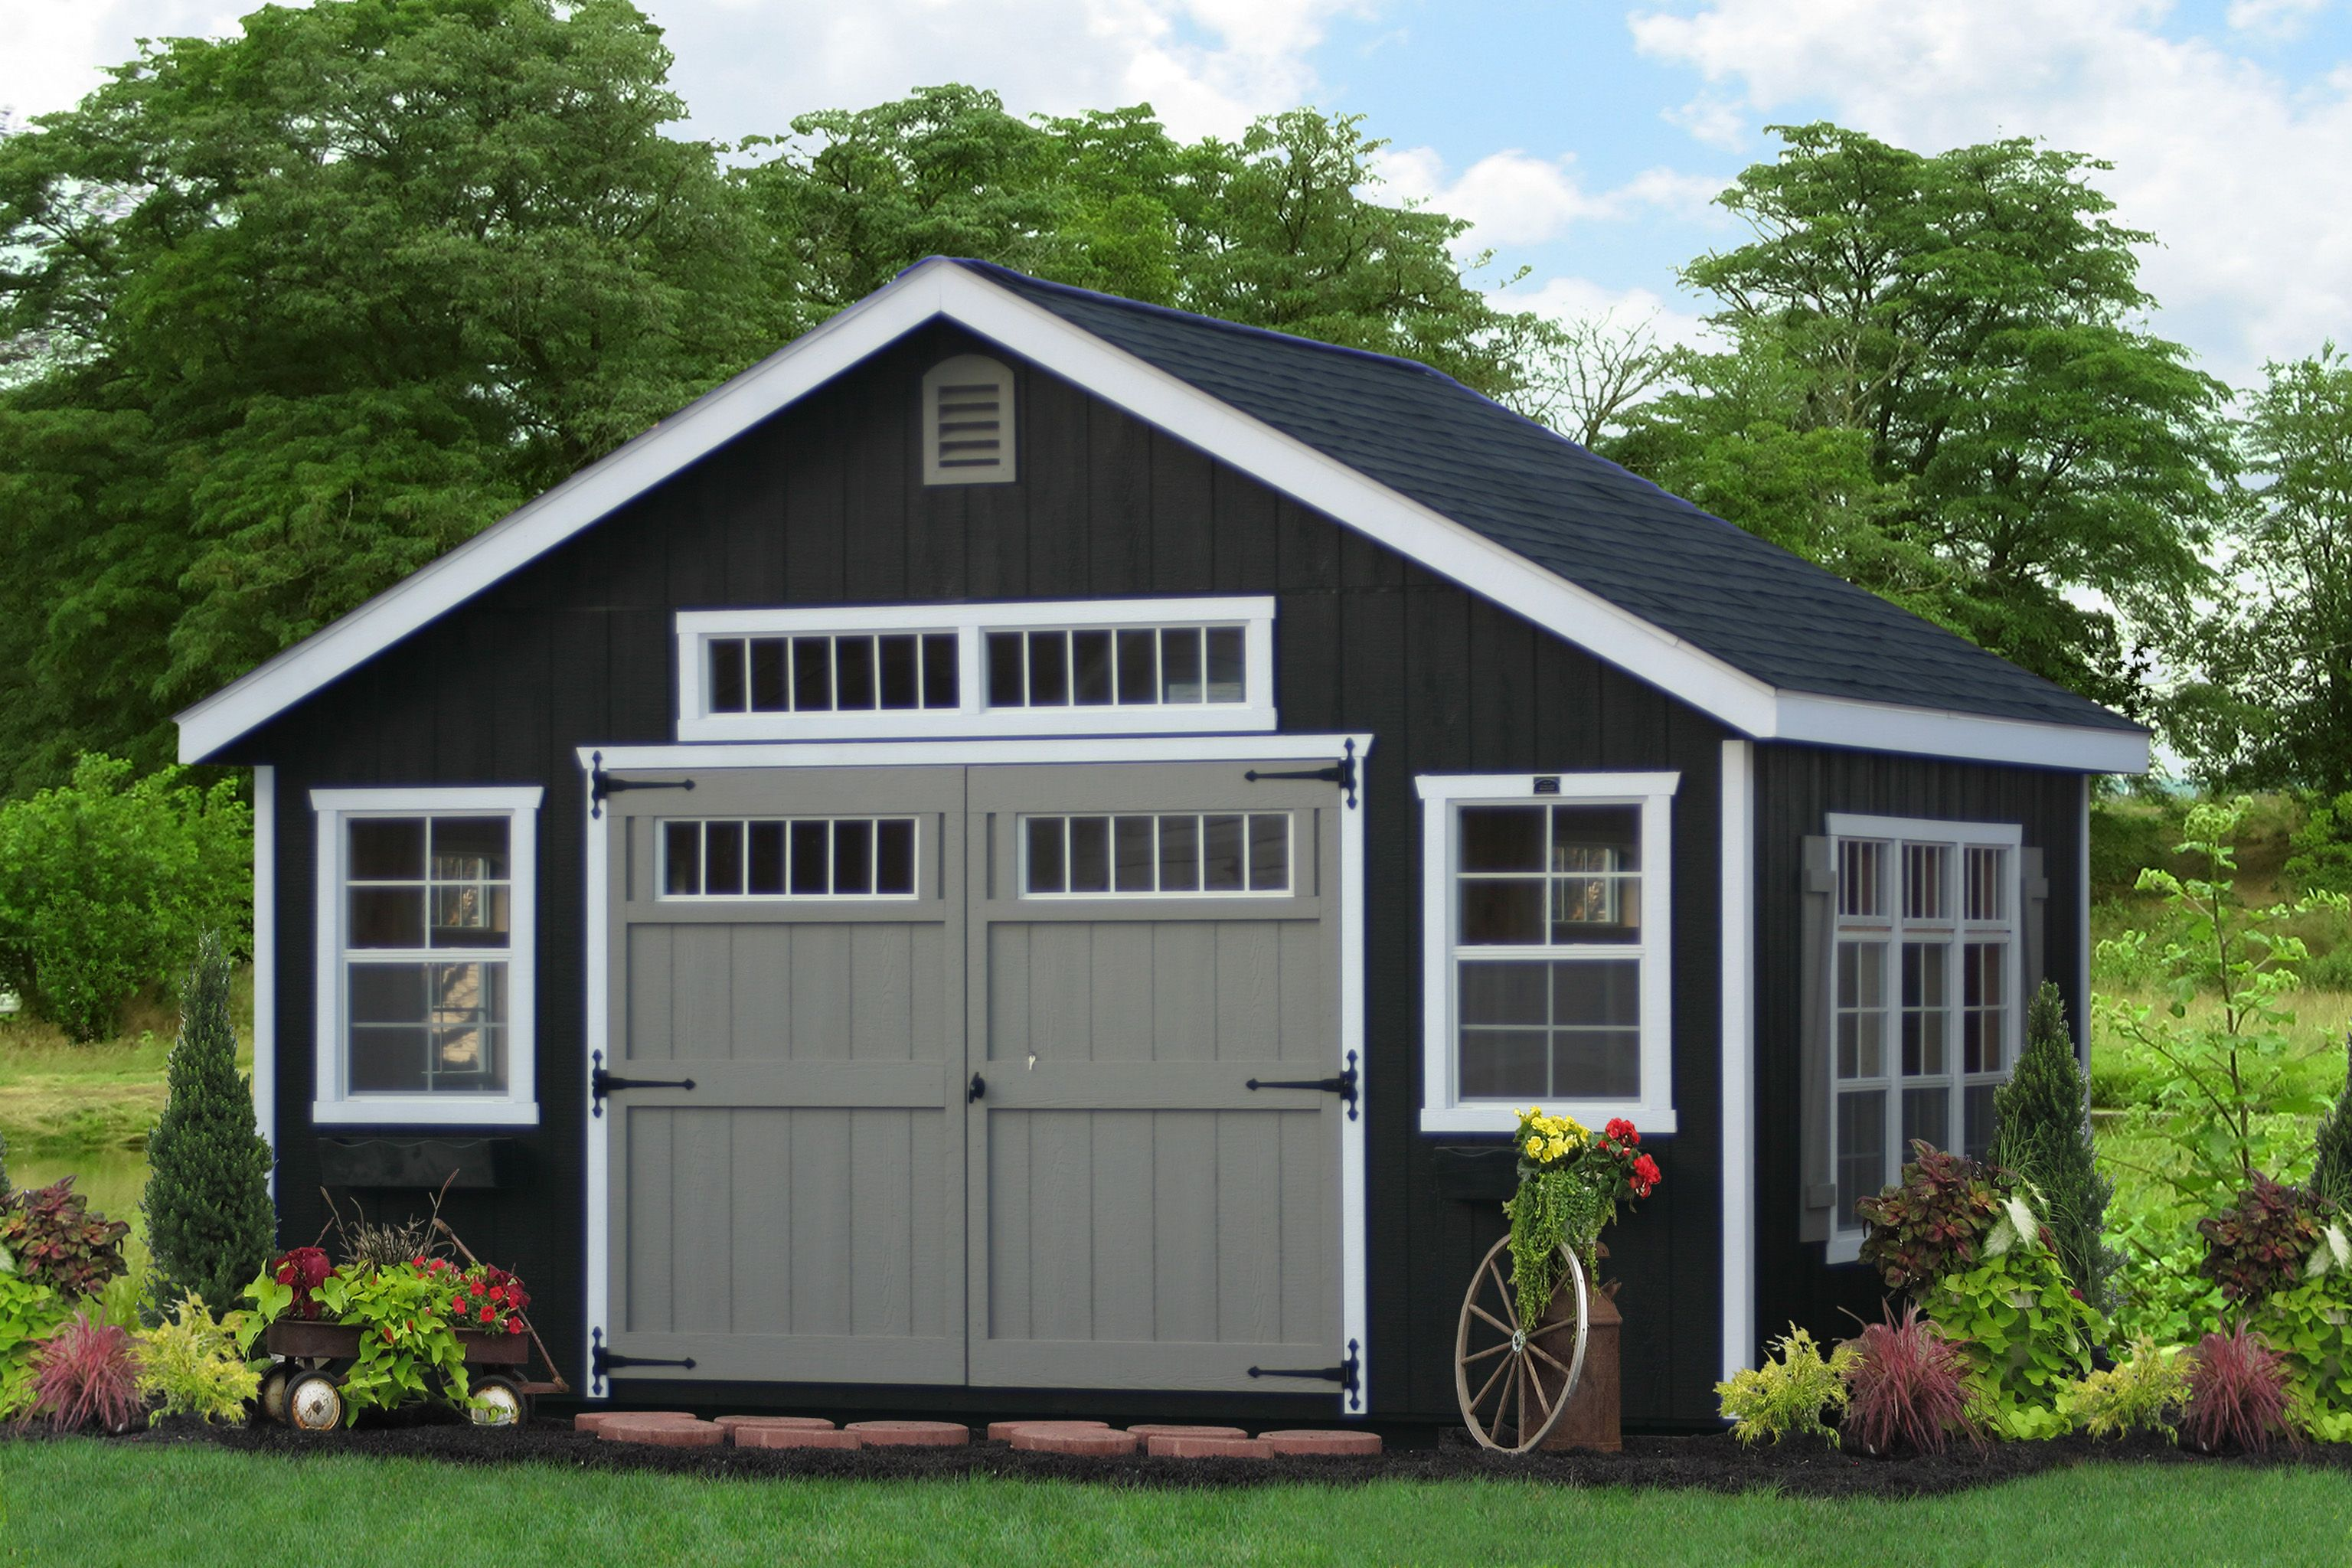 Delicieux Classic Wooden Storage Sheds For PA, NJ, NY, CT, DE, MD